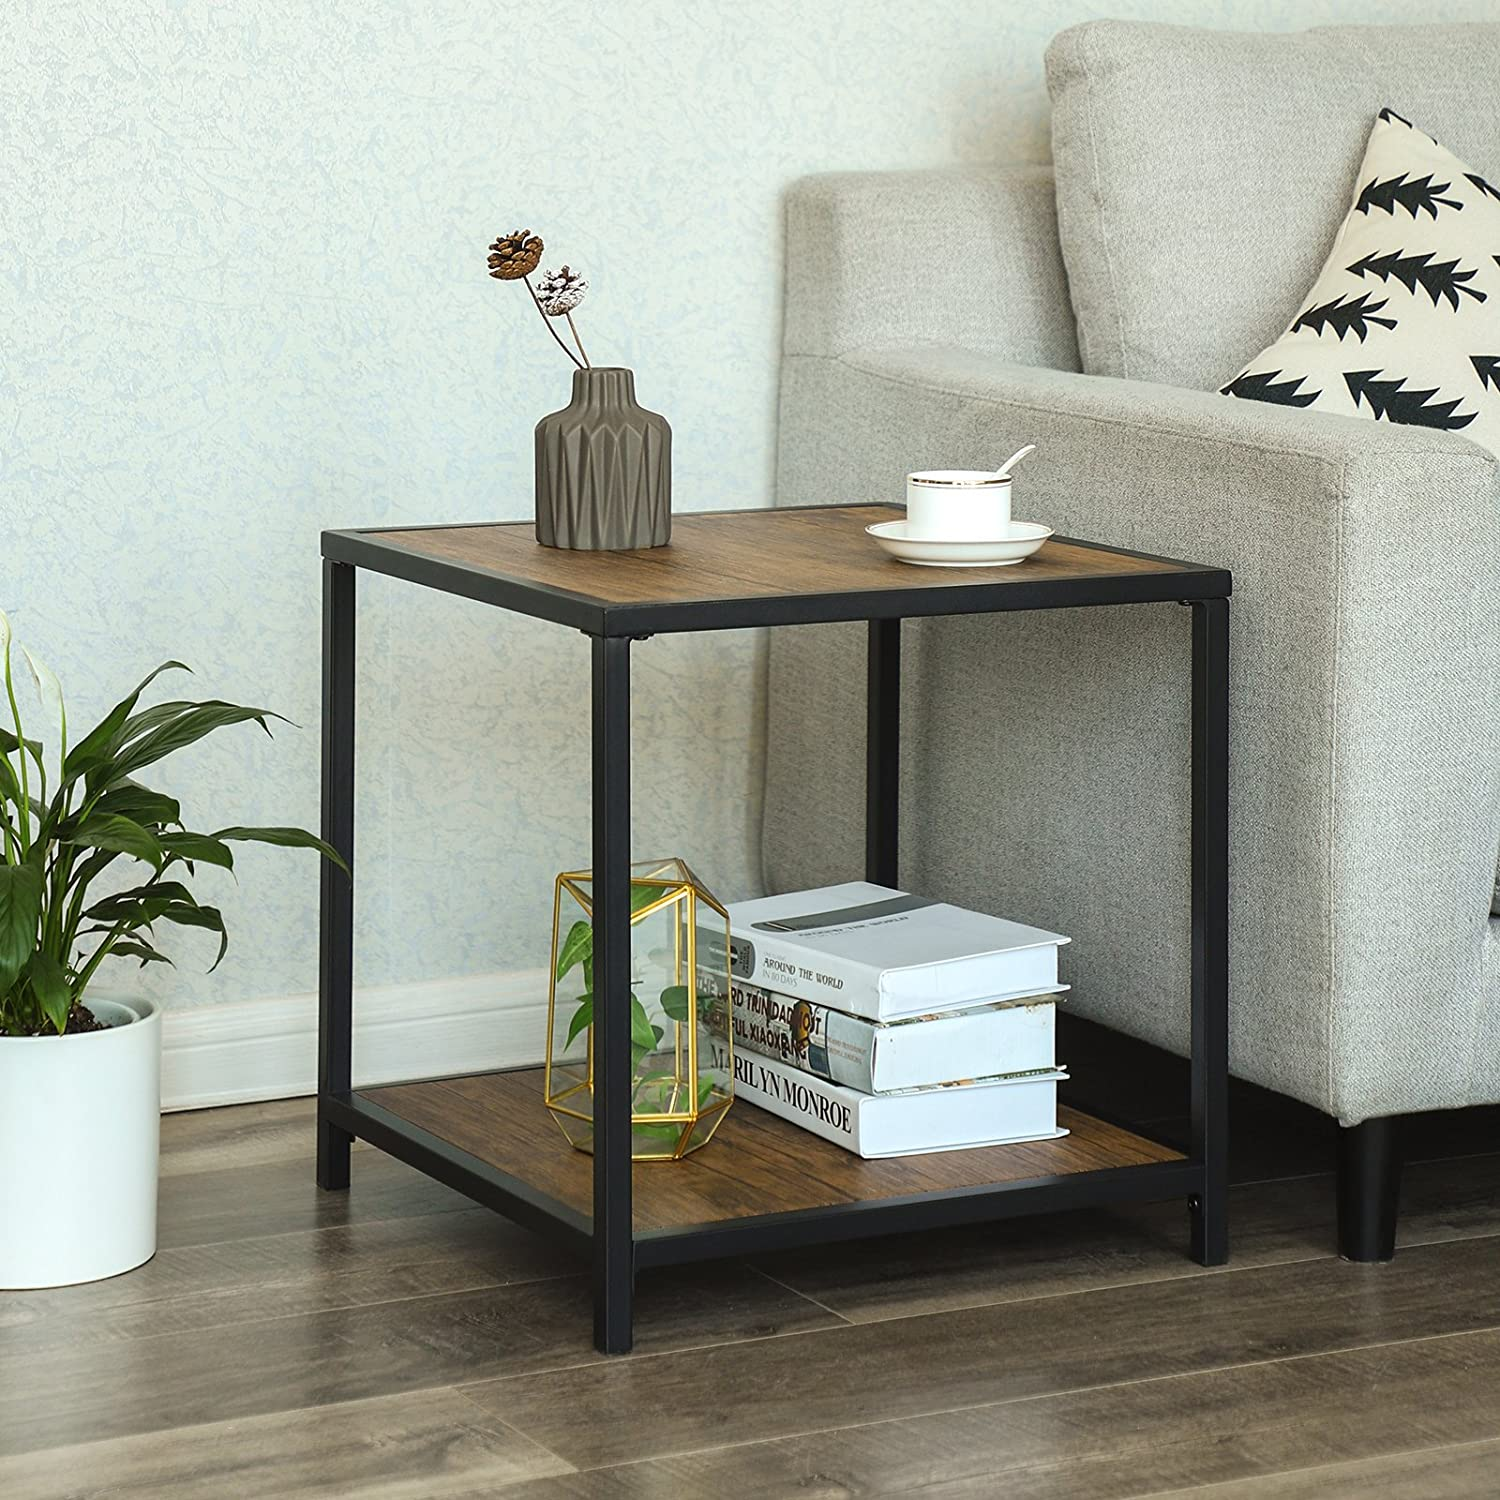 VASAGLE Industrial End Table with Storage Shelf, Living Room Hall Office, Easy Assembly with Iron Frame, Wood Look Accent Furniture in Cube Shape, Rustic ULET50BM